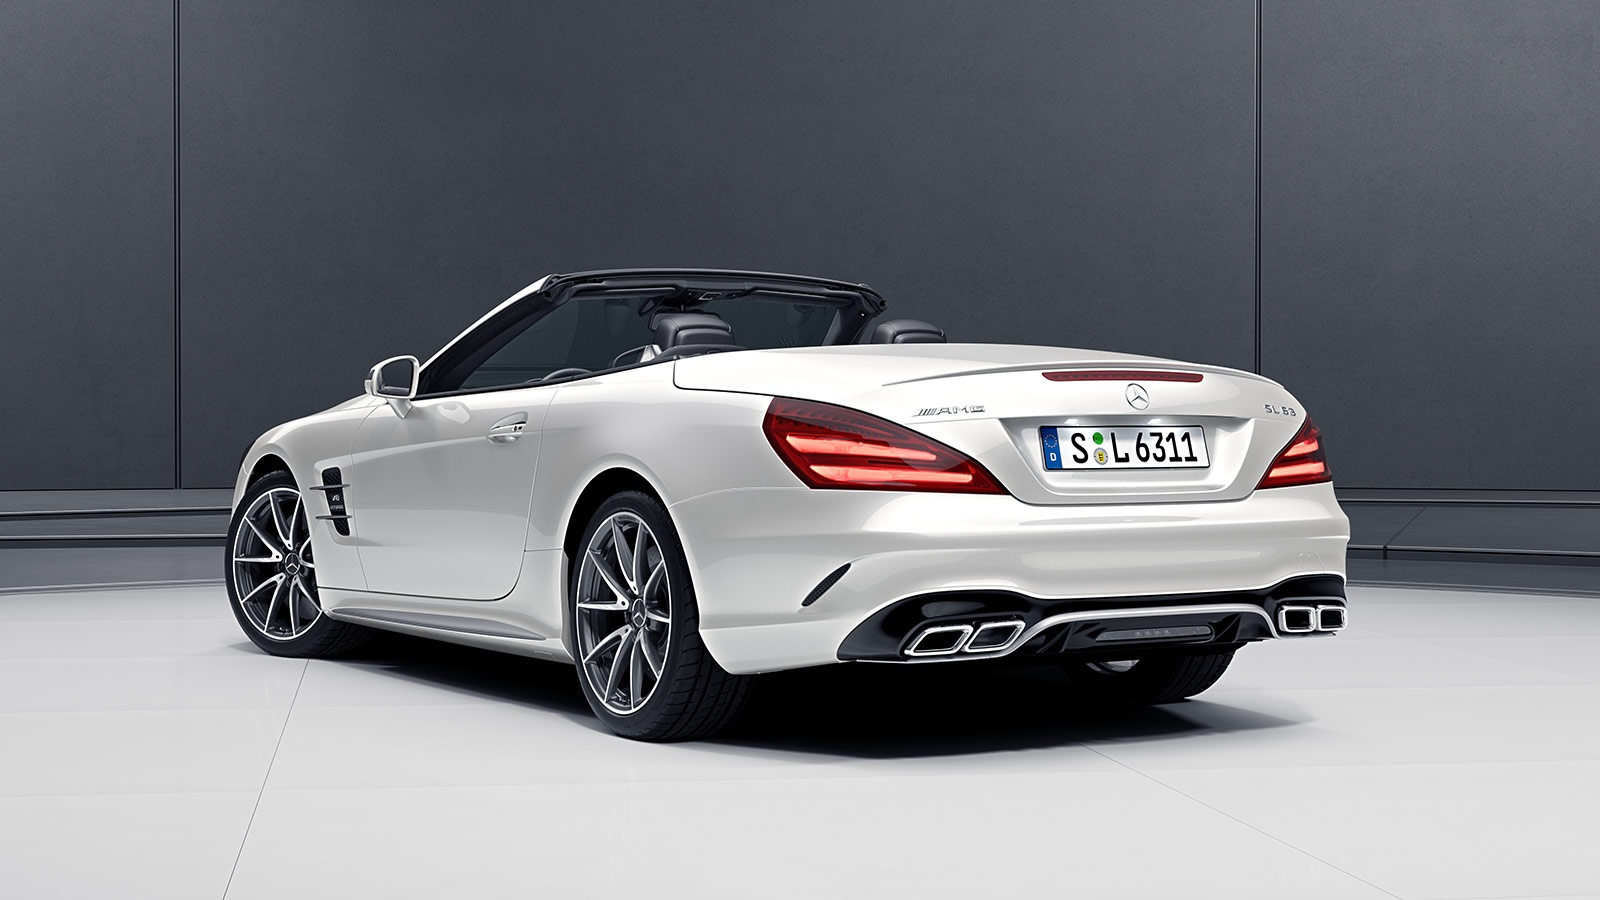 Mercedes benz sl 63 amg 2017 5 5l in uae new car prices for Mercedes benz sl price